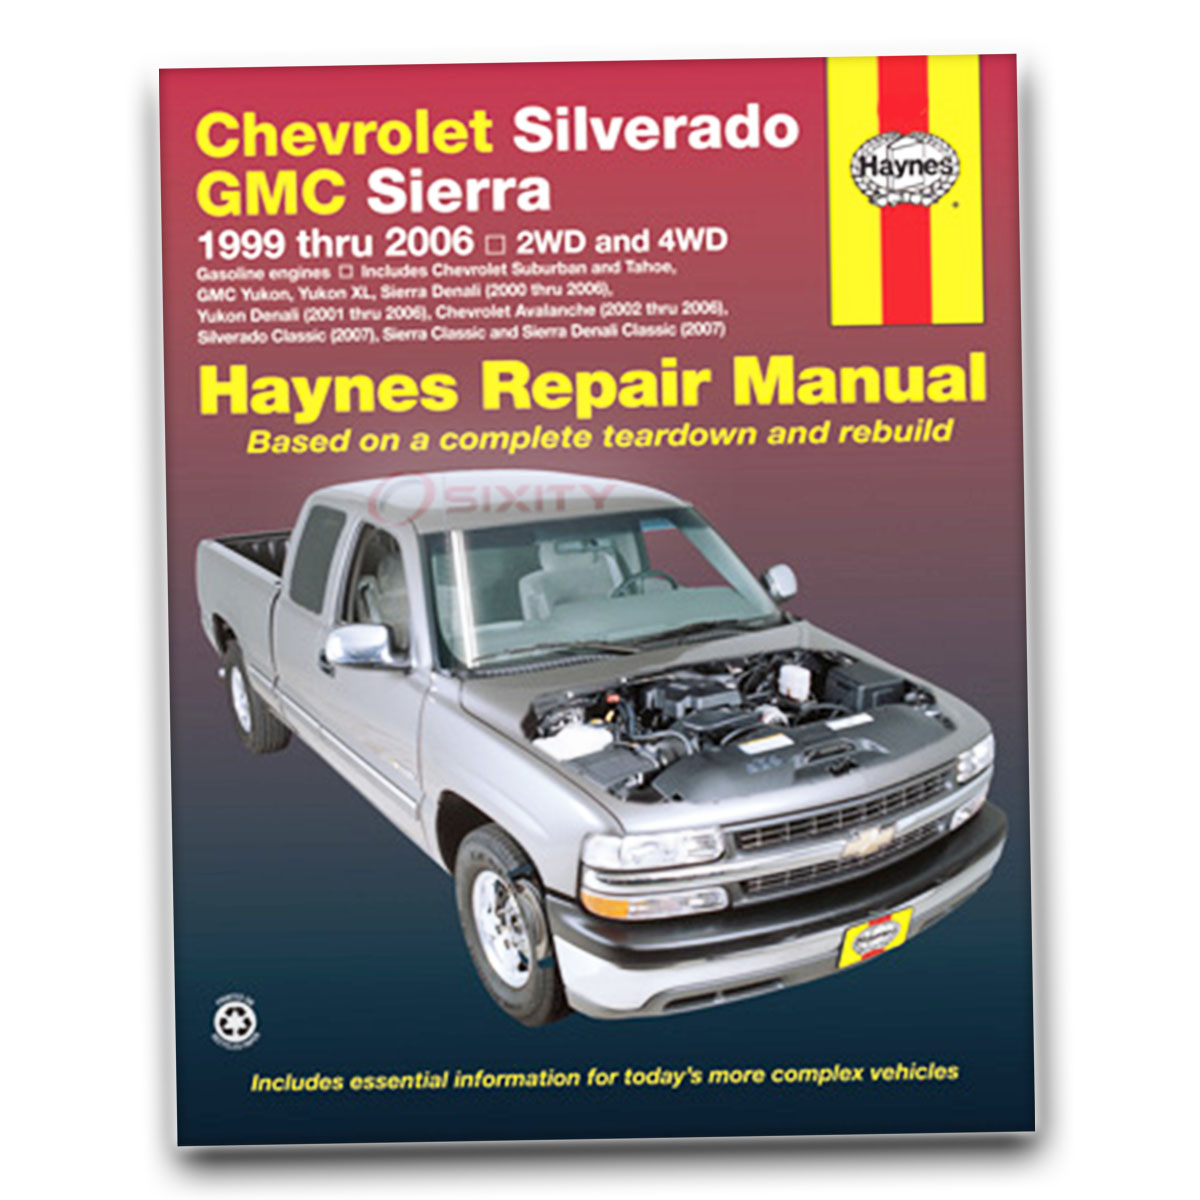 gmc yukon haynes repair manual slt denali sle shop service garage rh ebay com 2007 Yukon Denali Parts 2007 Yukon Denali Specifications